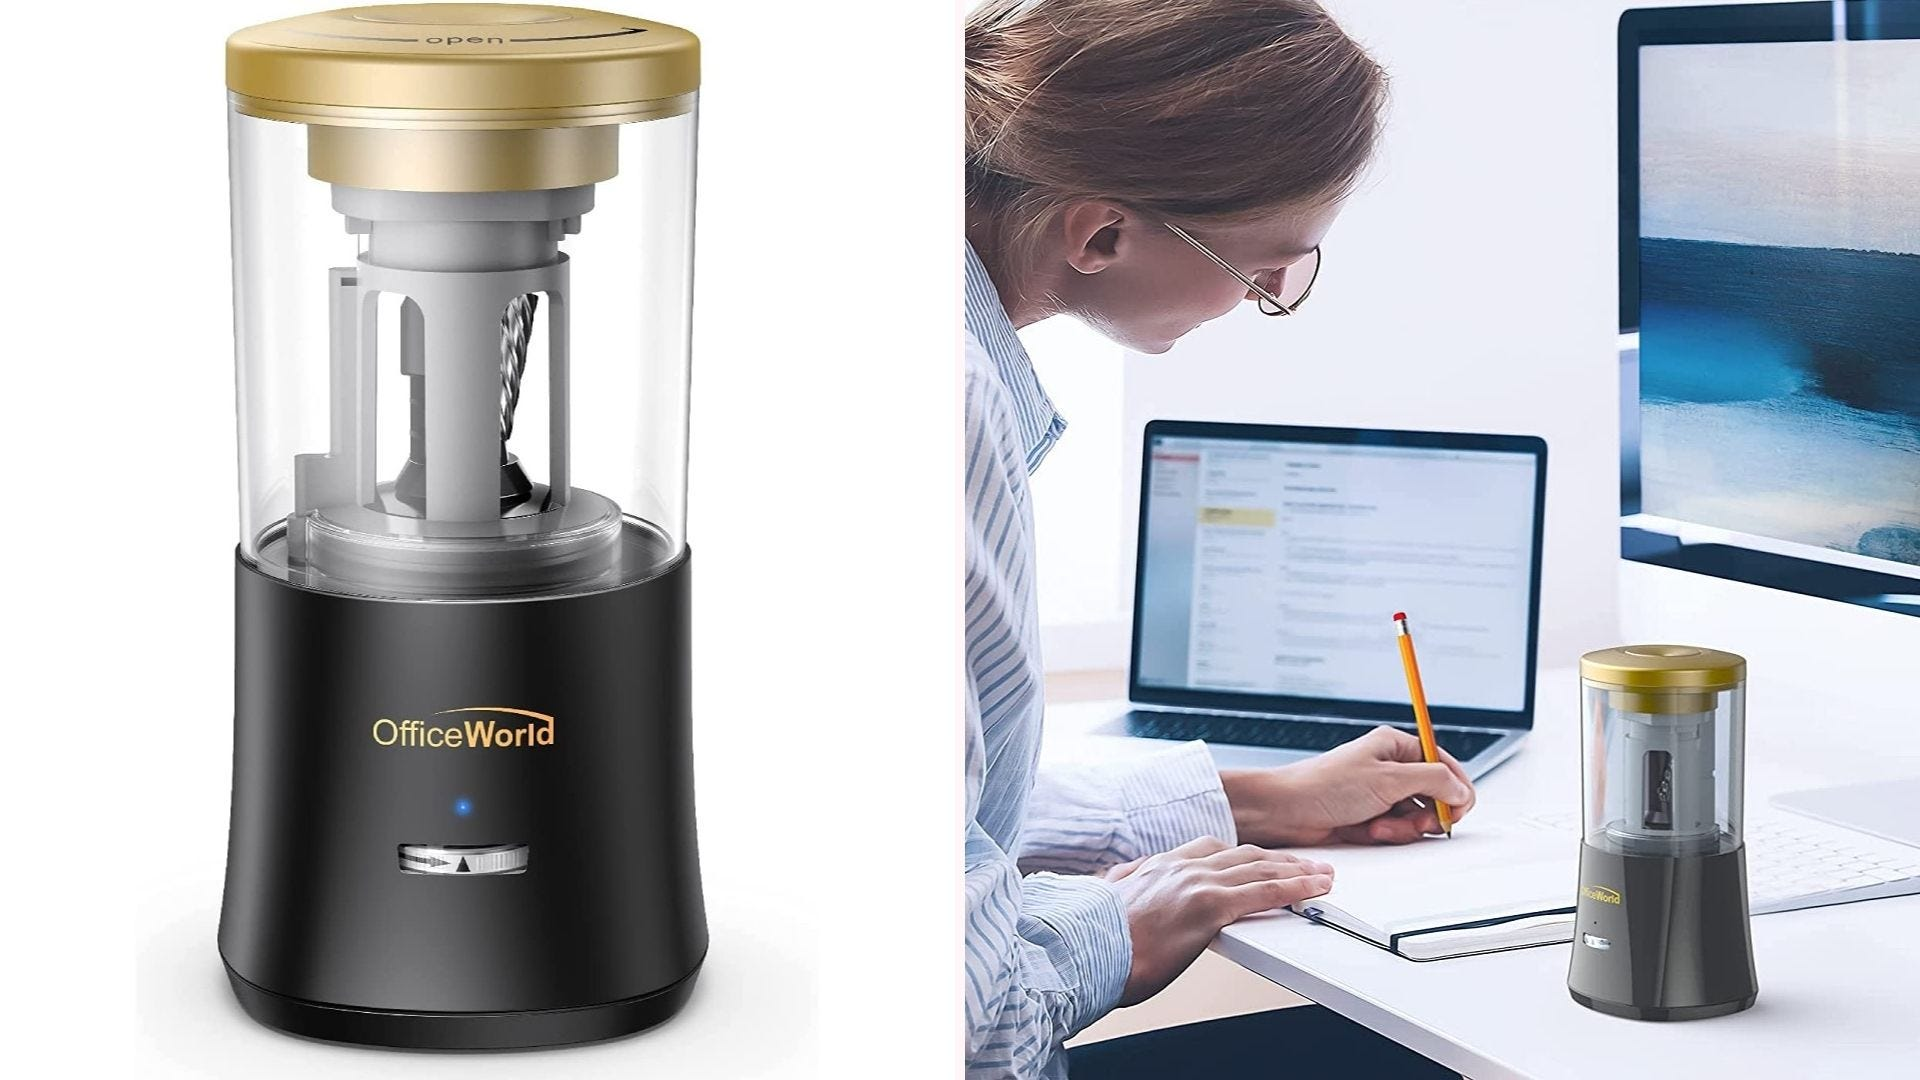 On the left, a tall electric sharpener. On the right, a woman writing at a desk with the sharpener sitting next to her.